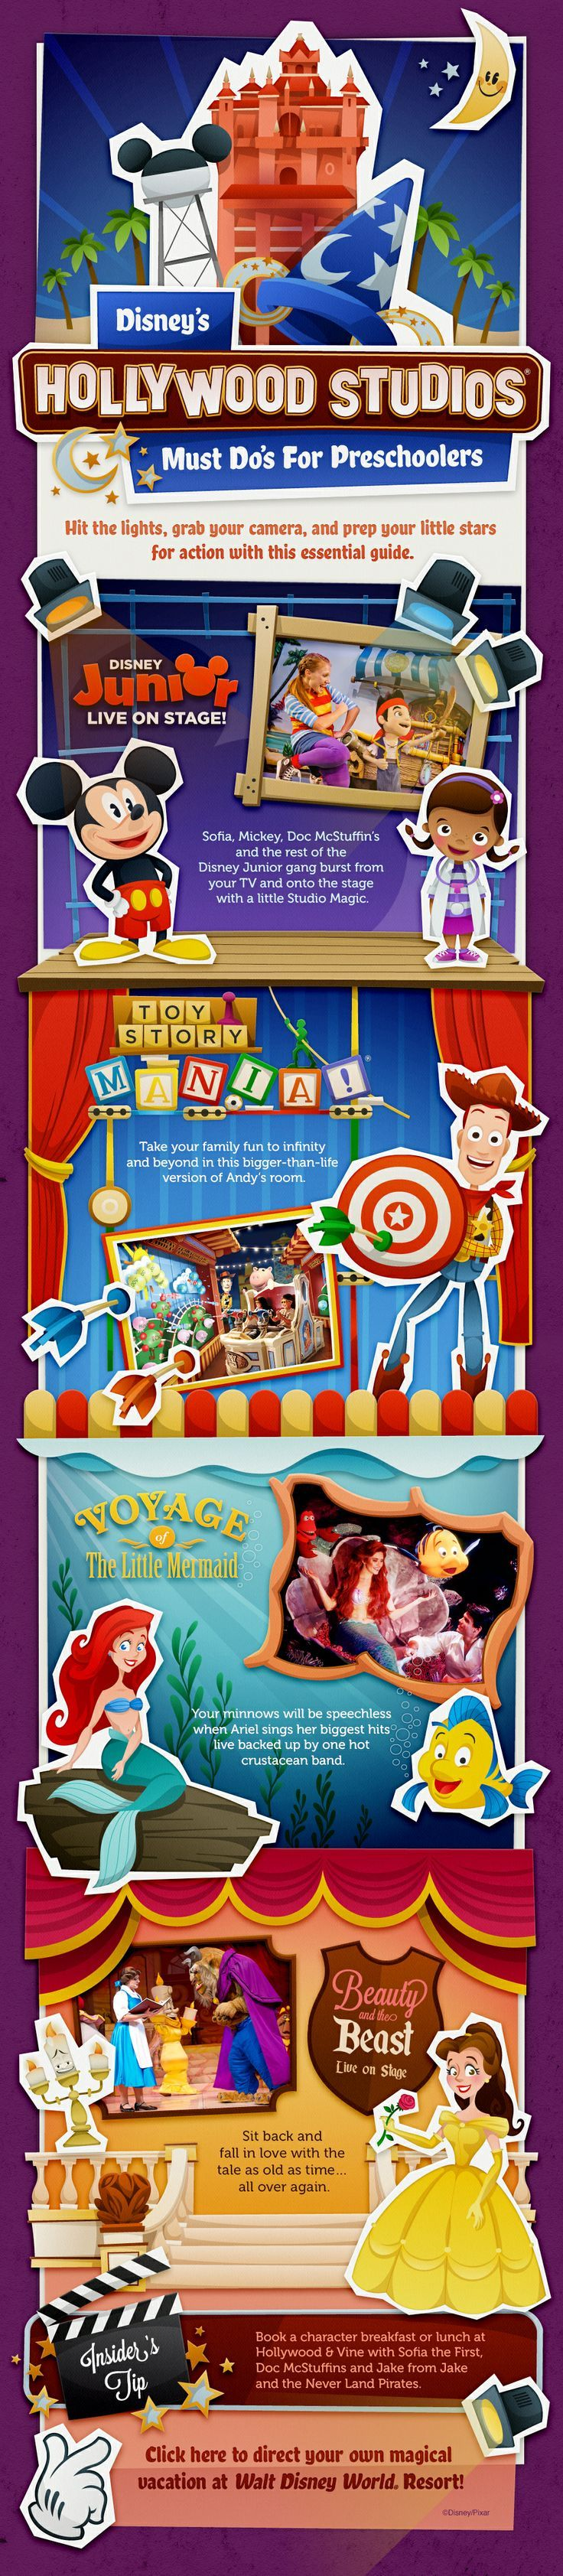 Disney's Hollywood Studios Must Do's for Preschoolers (or select another age group)! Disney Junior, Mickey Mouse Club, Doc McStuffins, Sofia the First, Toy Story Mania, Voyage of the Little Mermaid, Beauty and the Beast Live on Stage!  | Disney Vacation | Disney Vacation Tips | Disney Planning Tips | Disney World Planning | Disney World with Kids |